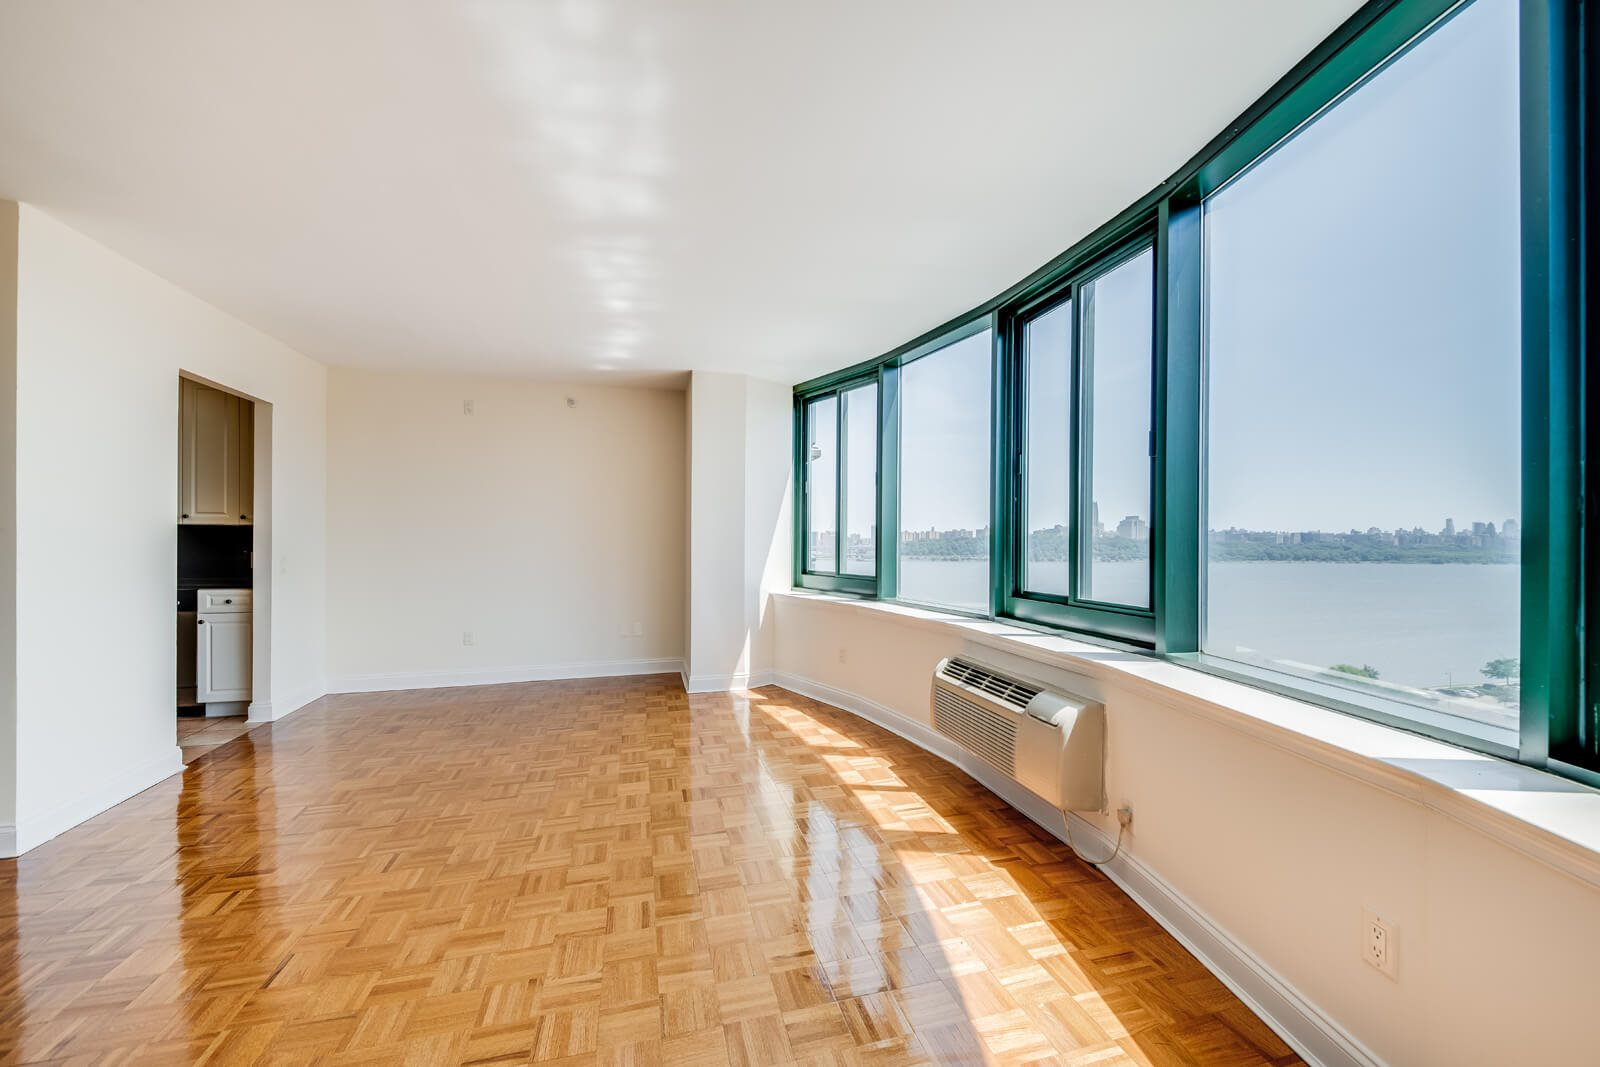 Luxurious and Spacious Interiors at Windsor at Mariners, Edgewater, NJ